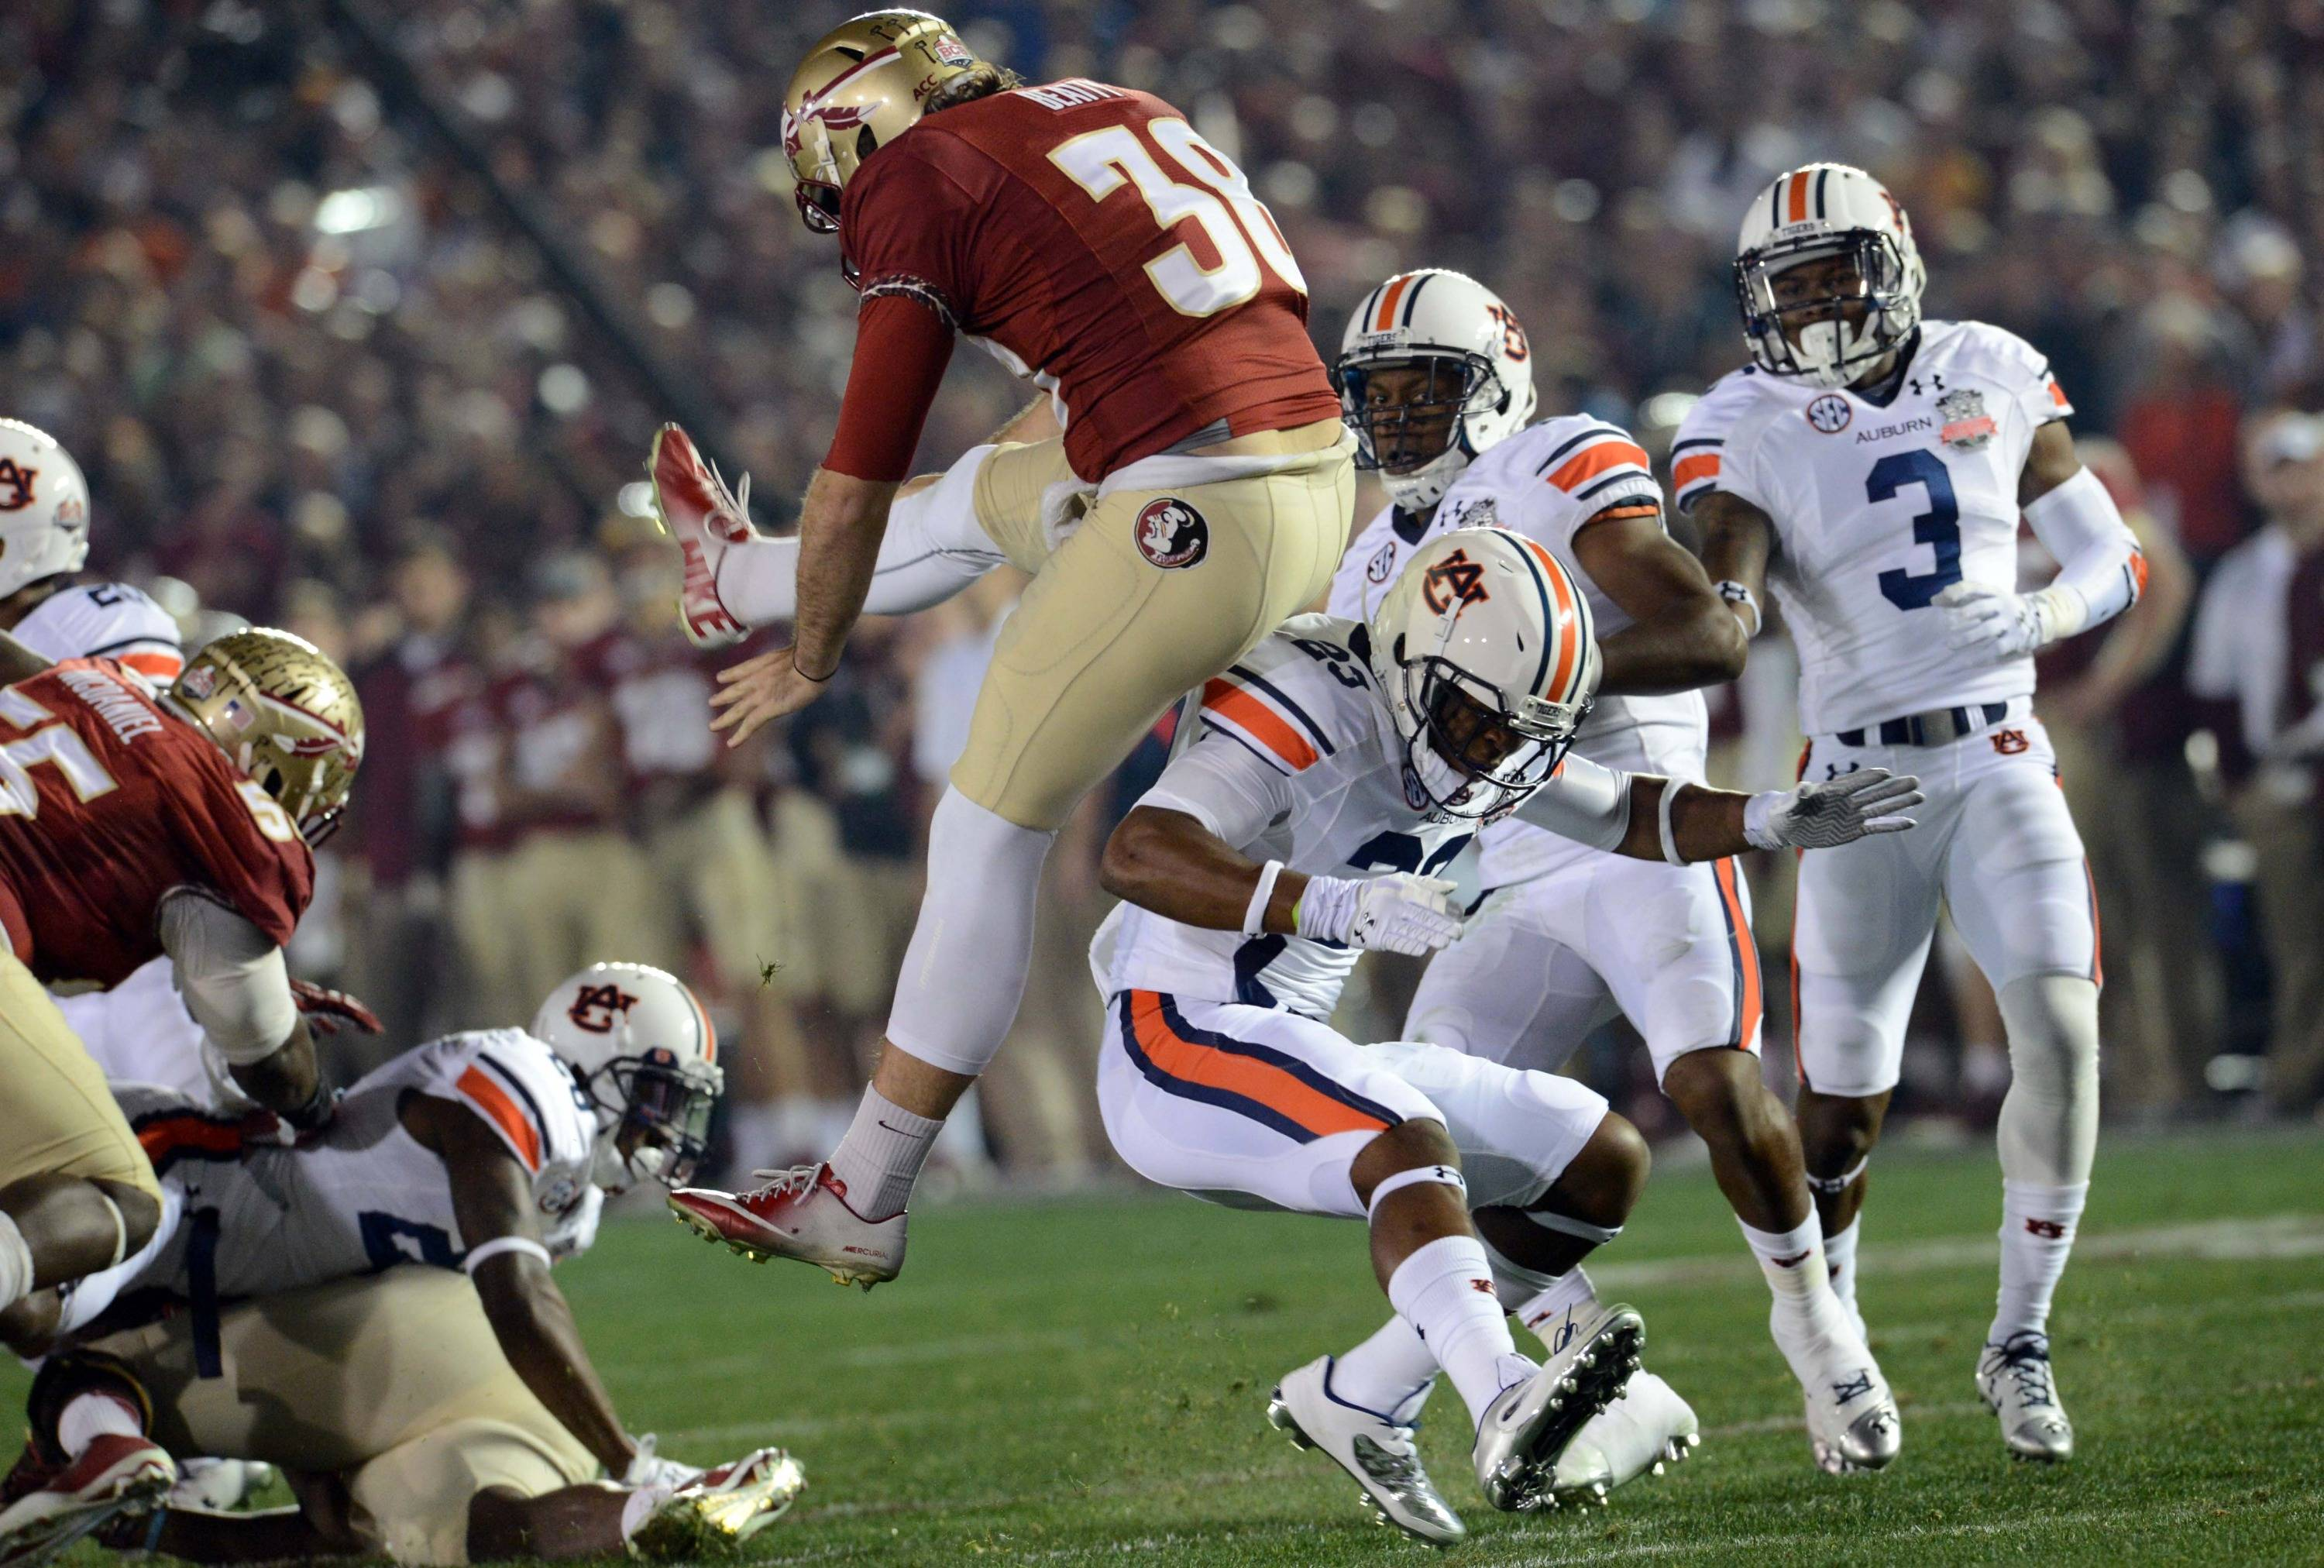 Jan 6, 2014; Pasadena, CA, USA; Auburn Tigers running back Johnathan Ford (23) is called for roughing the punter against Florida State Seminoles punter Cason Beatty (38) during the first half of the 2014 BCS National Championship game at the Rose Bowl.  Mandatory Credit: Jayne Kamin-Oncea-USA TODAY Sports